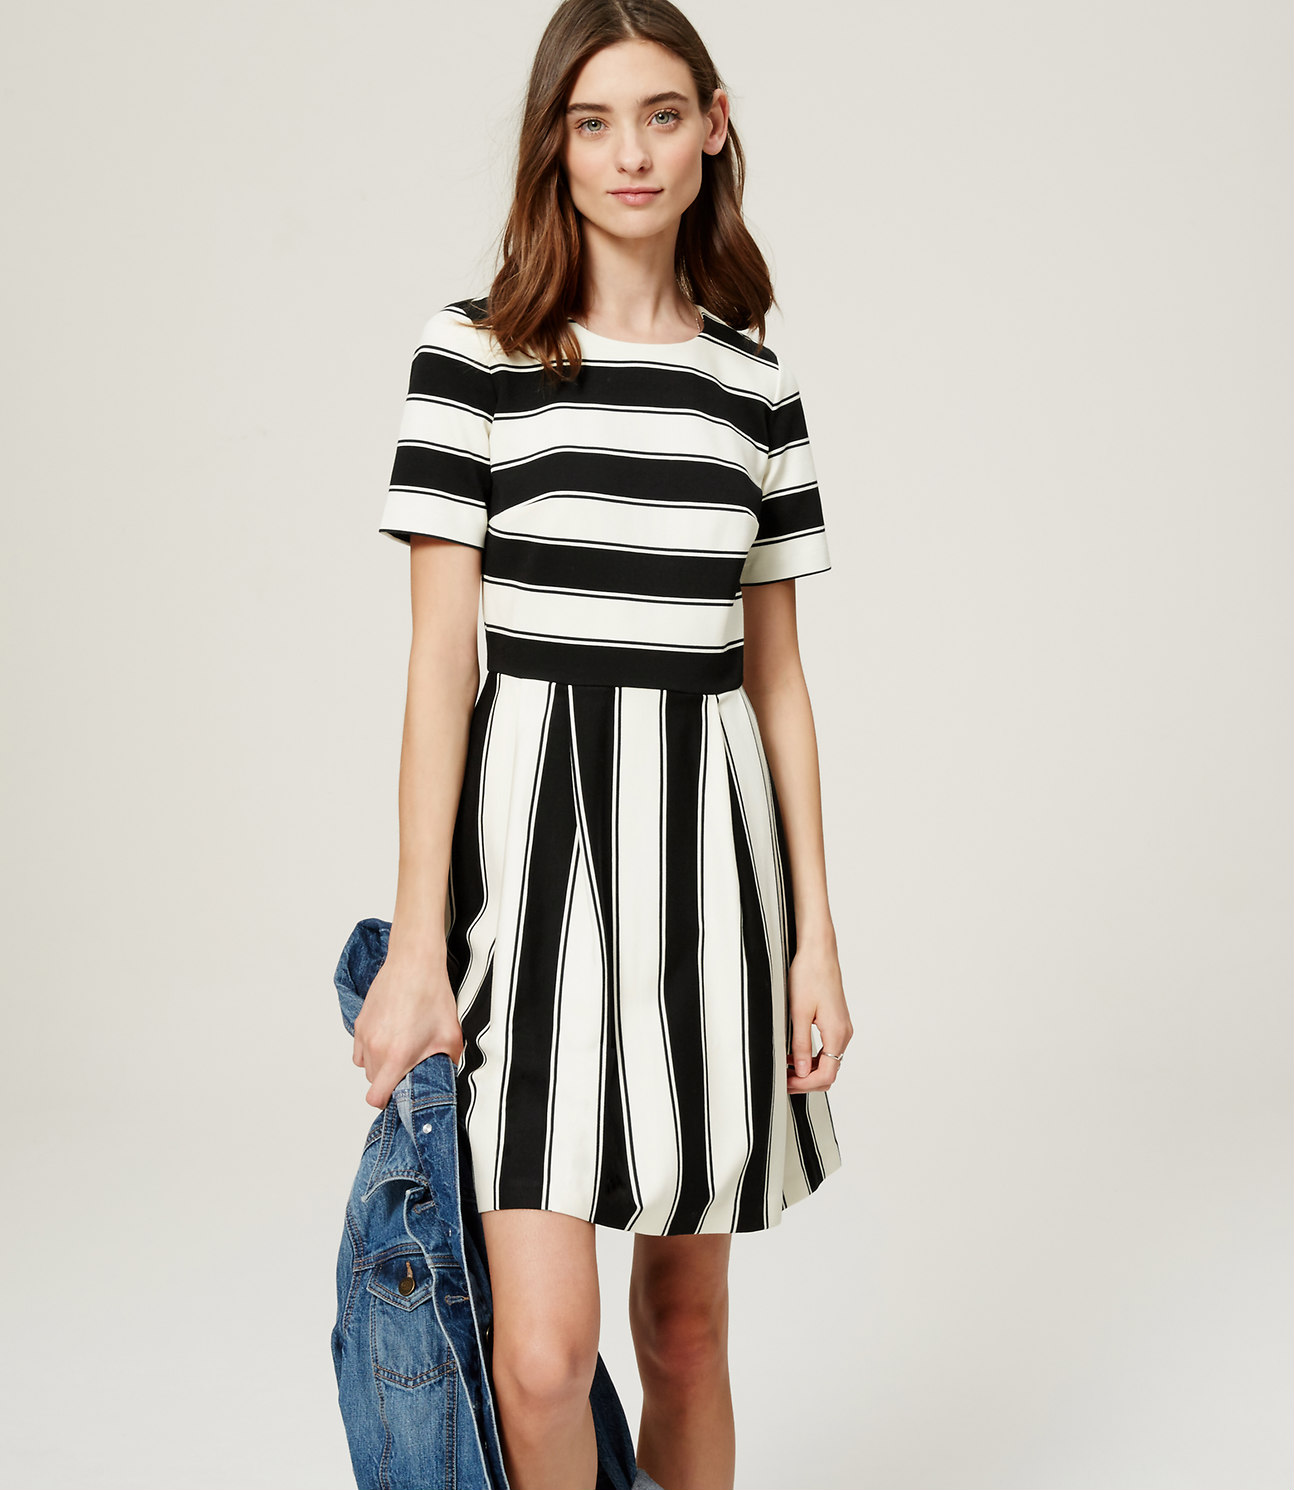 Striped Flare Dress  available at LOFT- $79.50